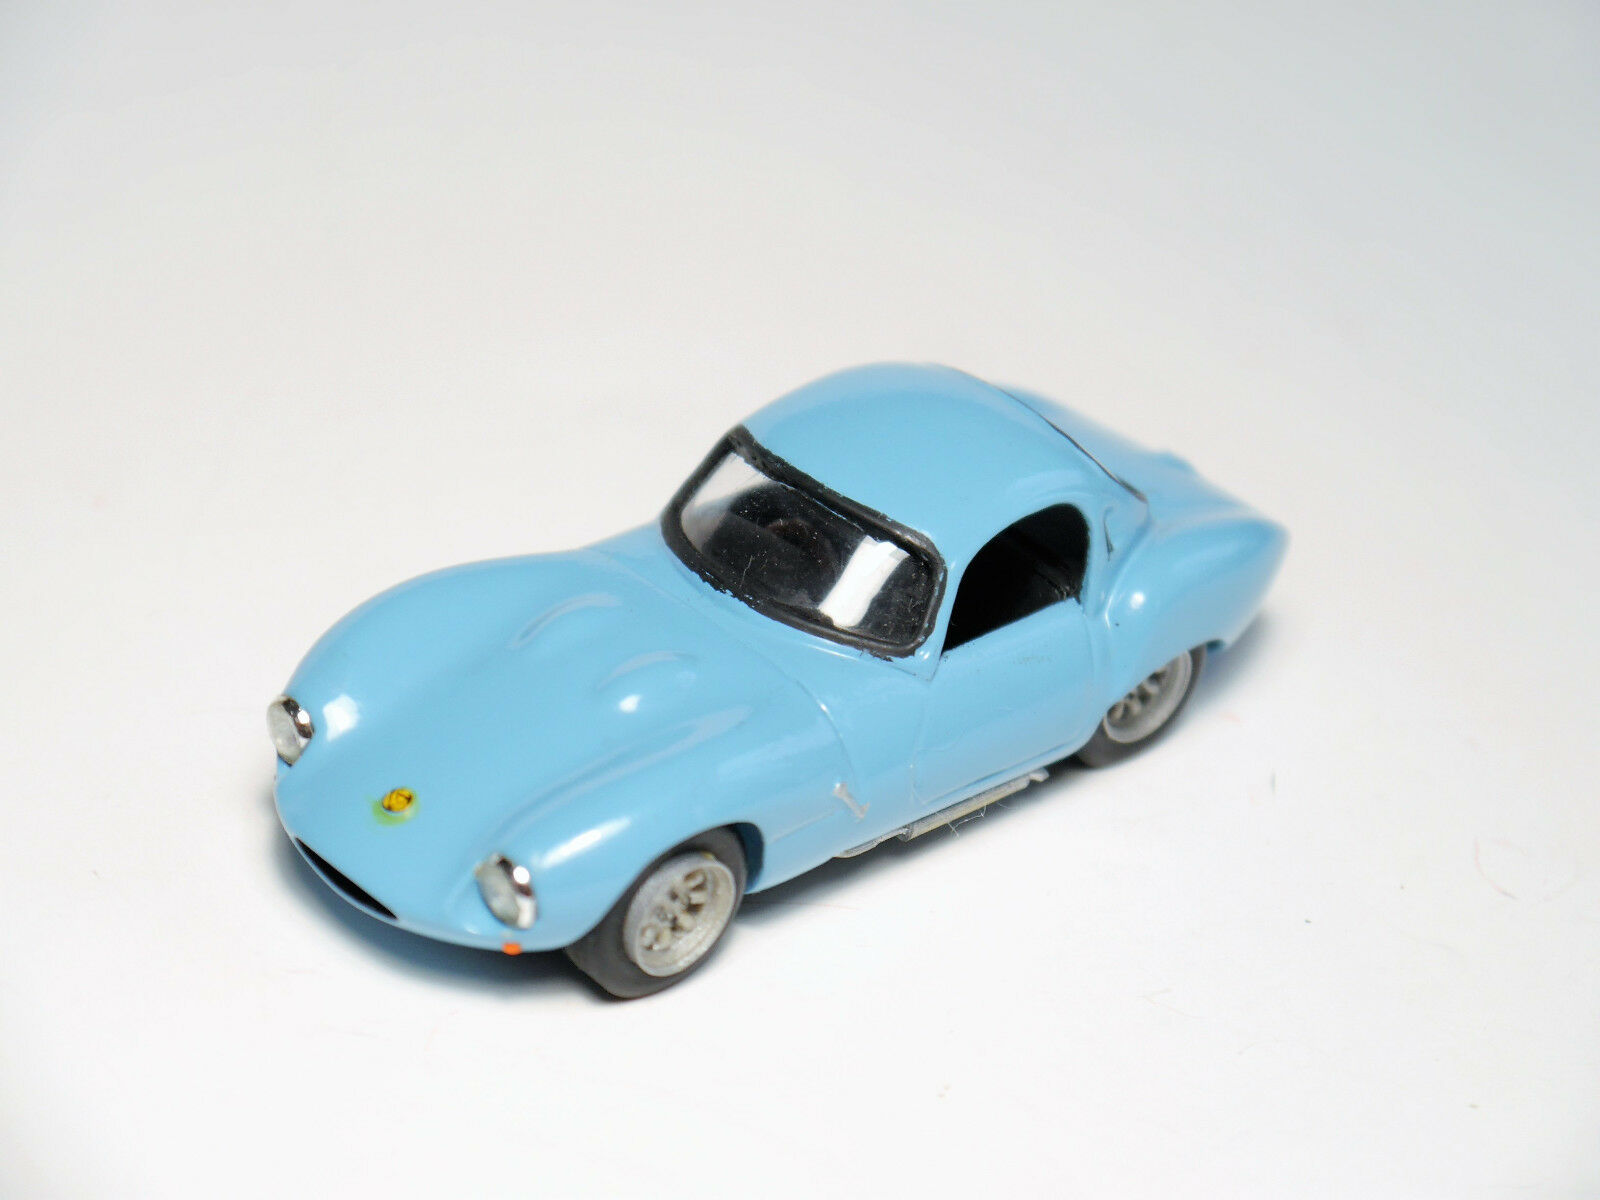 Ginetta g4 Coupe in bluee, Crafting Handmade East Anglia models in 1 43